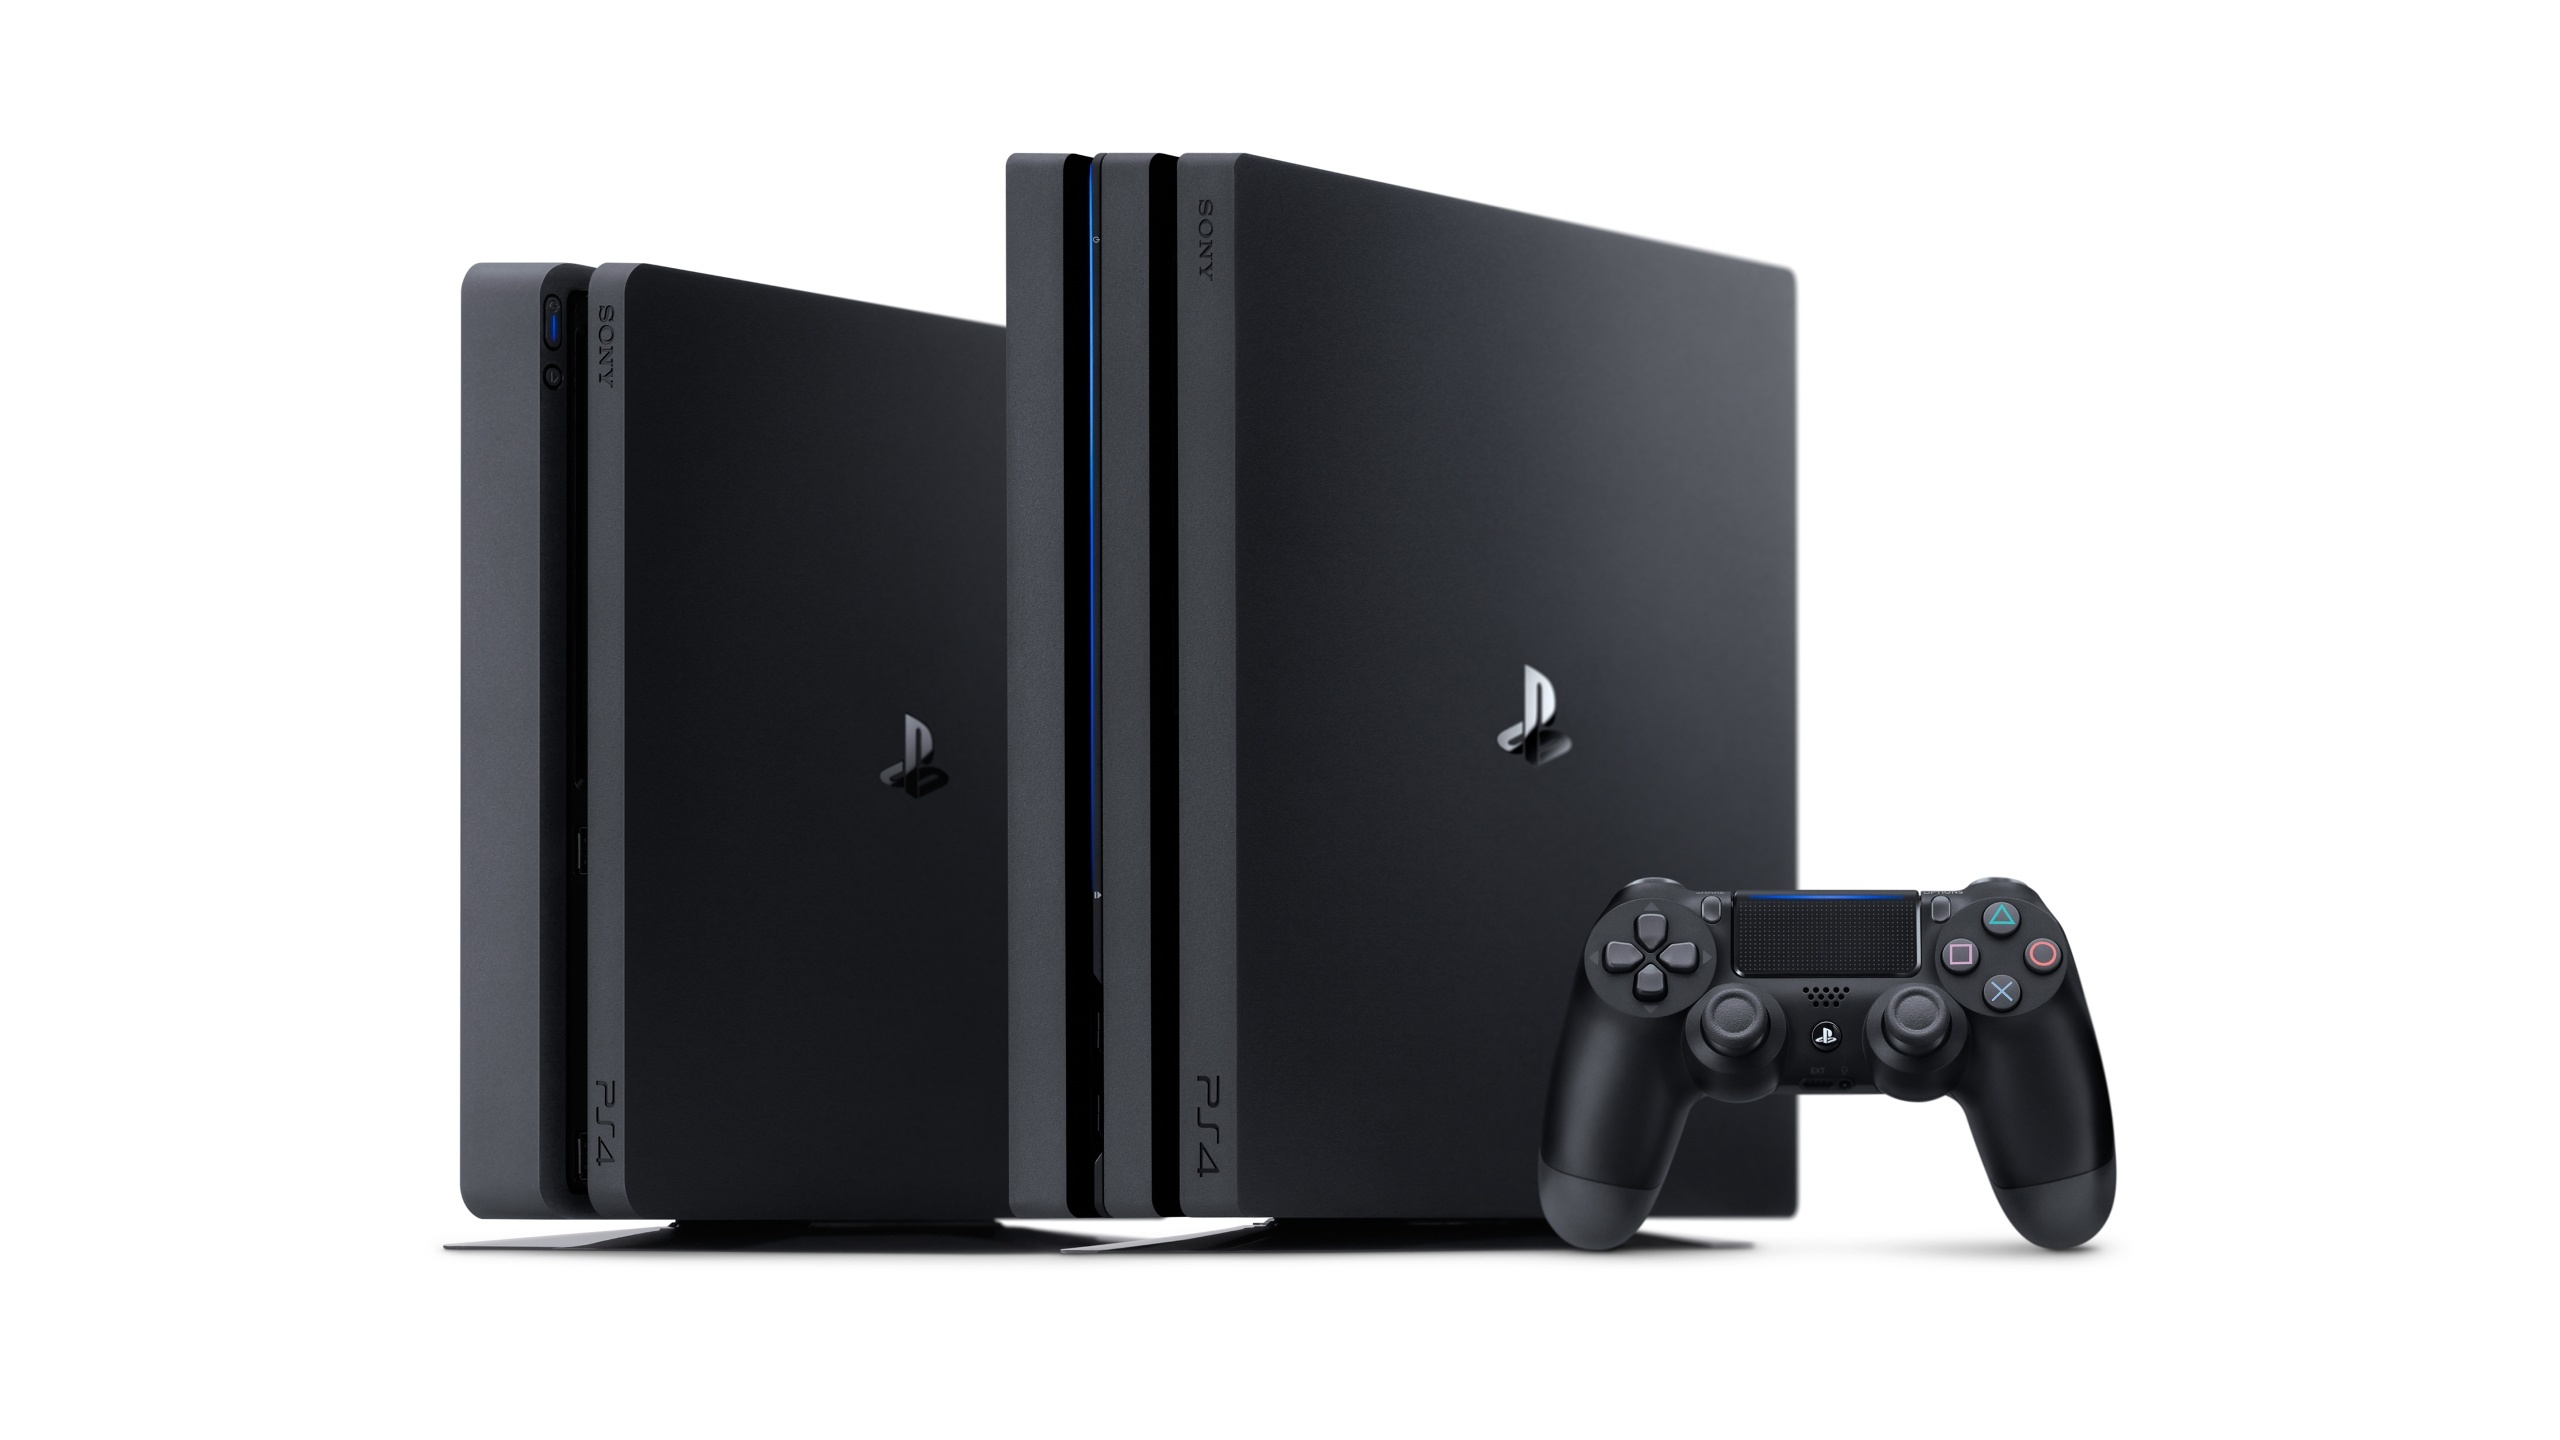 PS4 - PlayStation 4 Slim / Pro